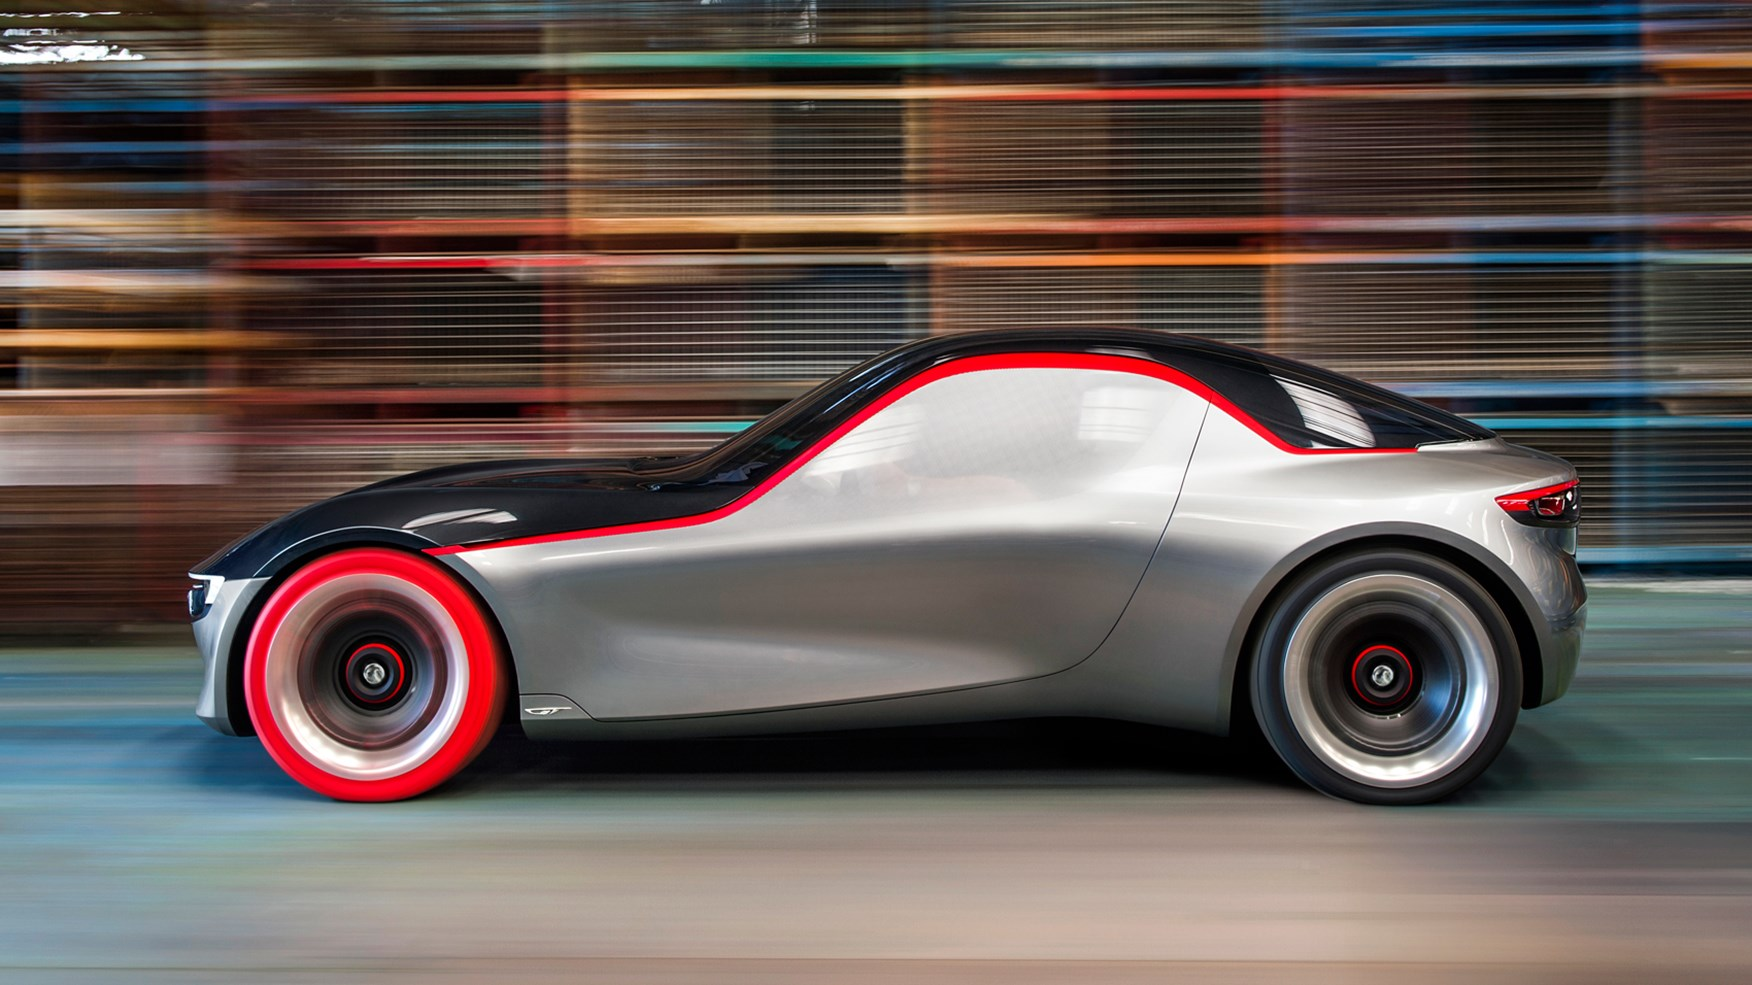 Opel Gt Concept Revealed At Geneva 2016 Vauxhall S Sports Car